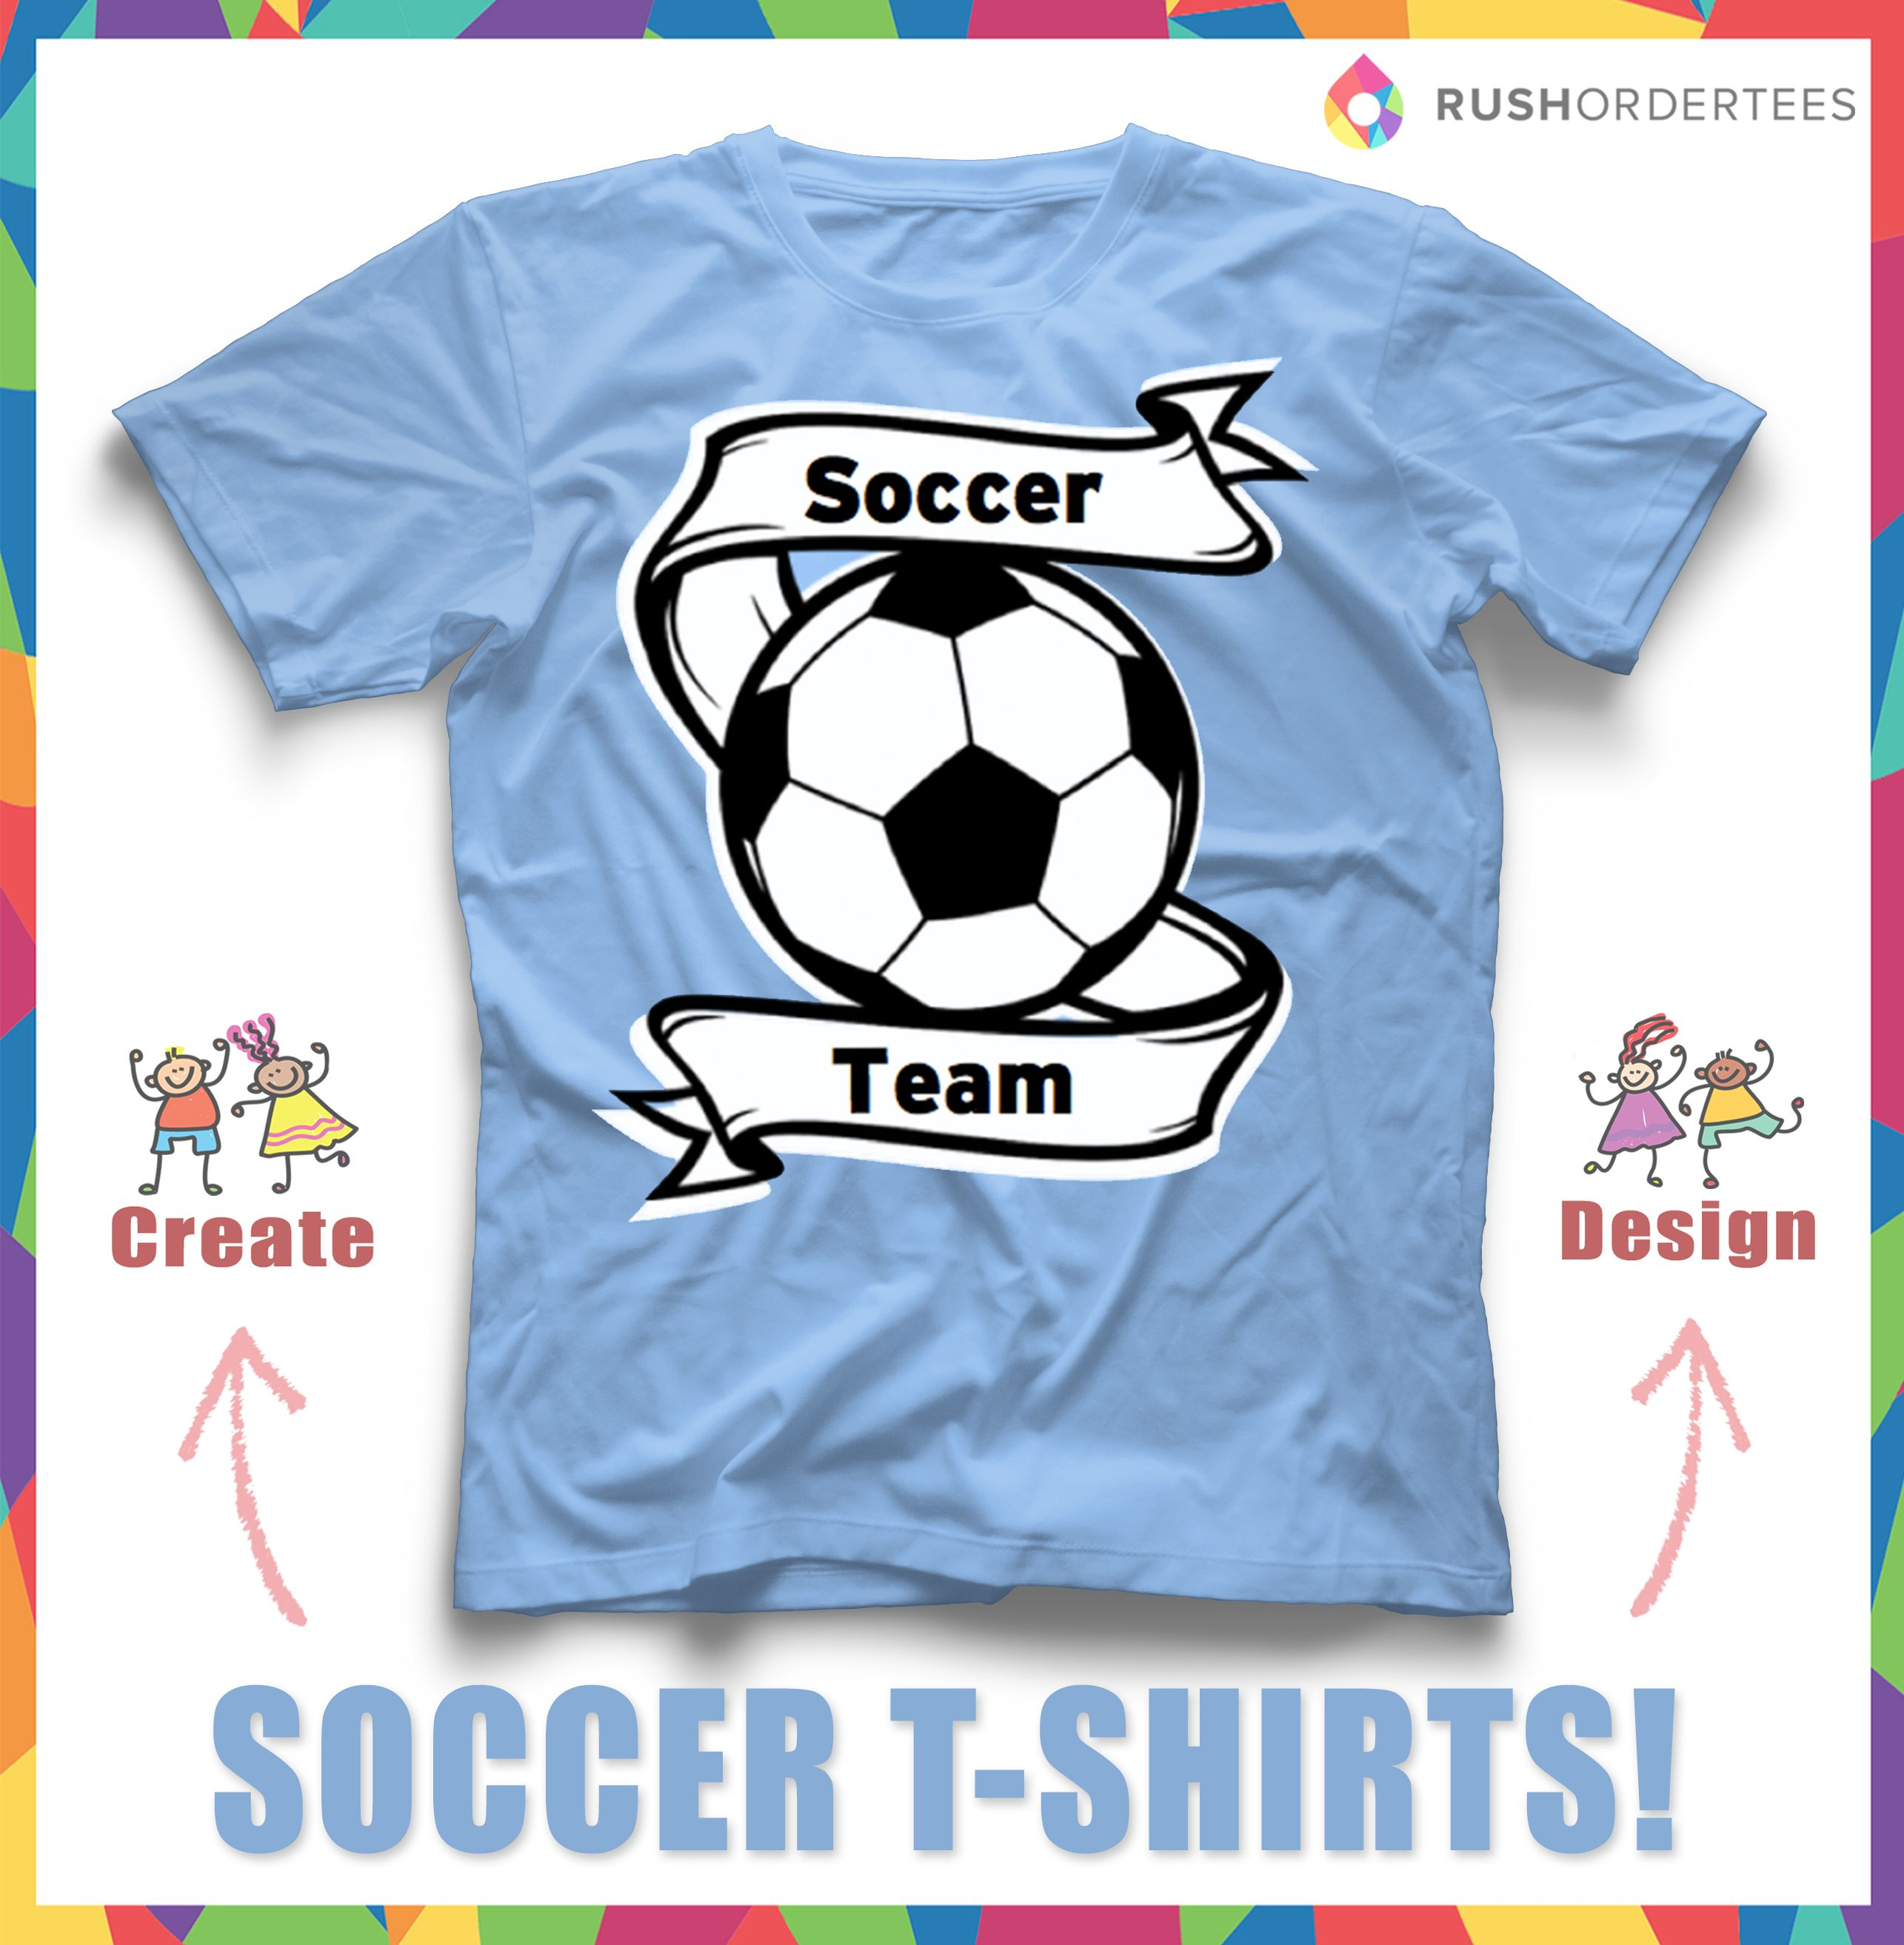 Soccer T Shirt Idea For Your Team Use Templates Upload Your Design Or Create Your Own Easily At Www Rushordertees Soccer Shirts Soccer Tshirts Soccer Gifts